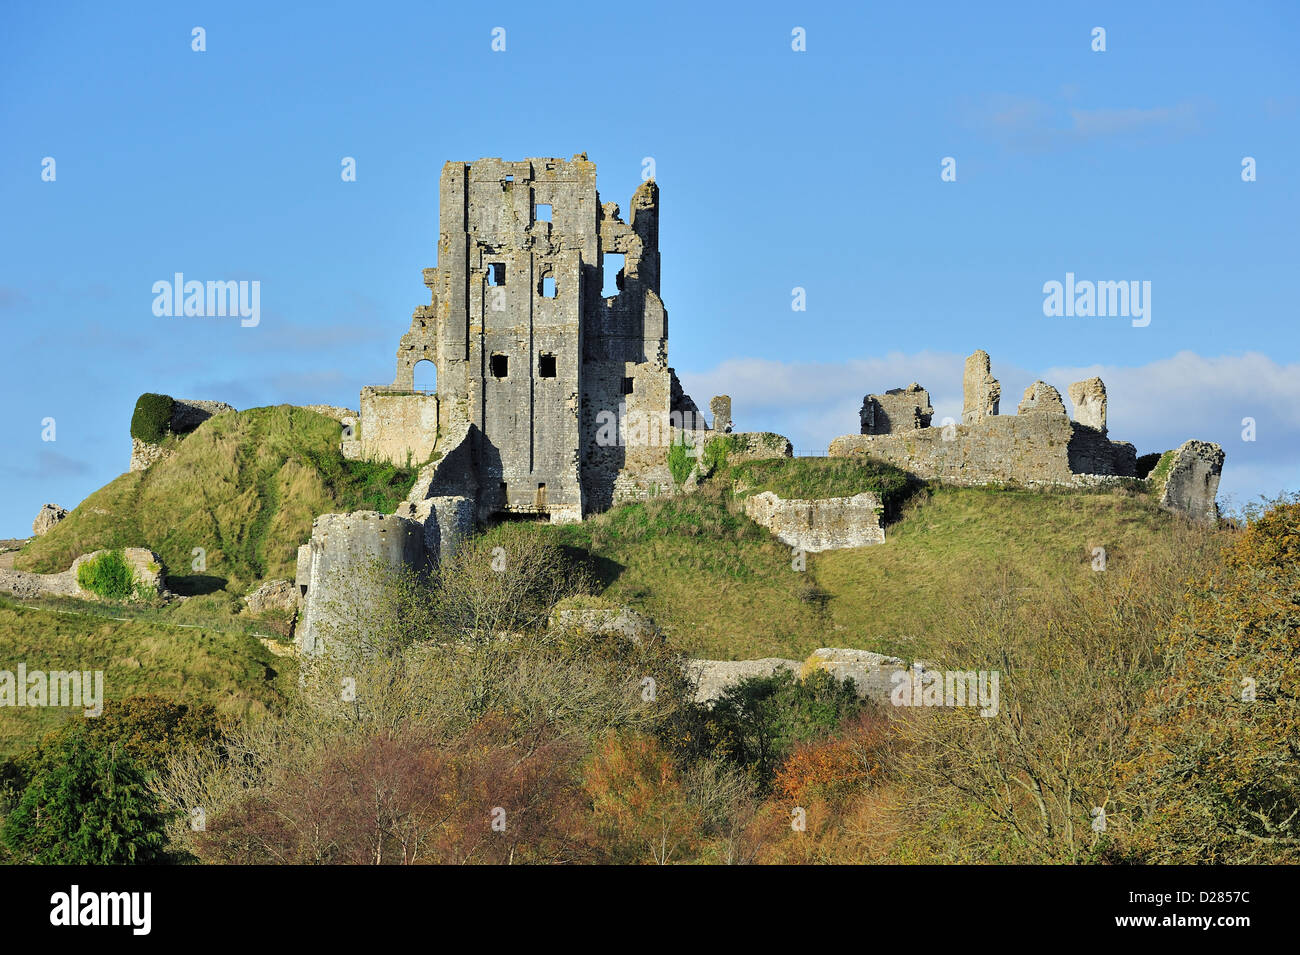 Ruins of the medieval Corfe Castle on the Isle of Purbeck along the Jurassic Coast in Dorset, southern England, - Stock Image